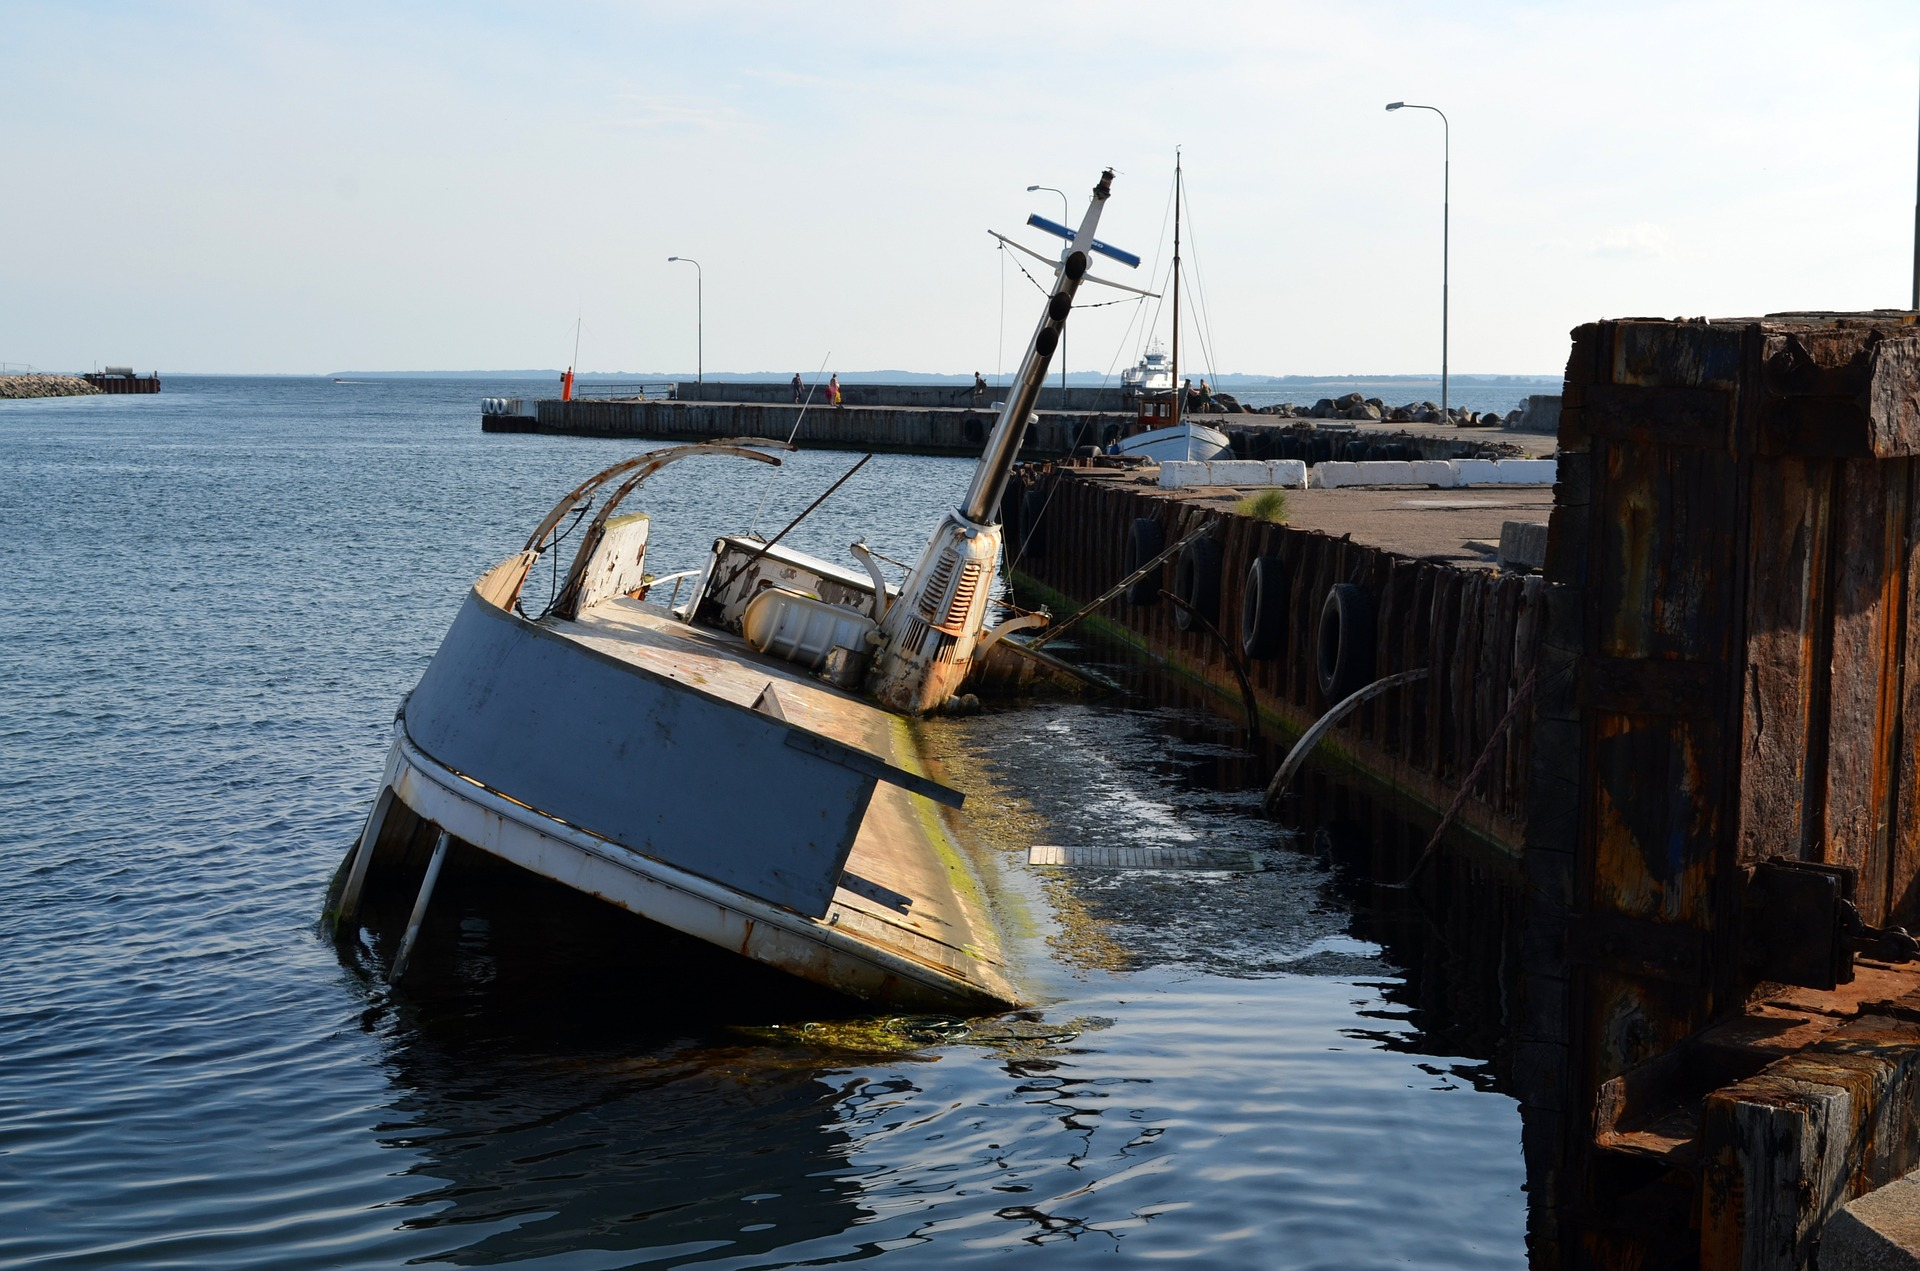 Affordable Boat Insurance